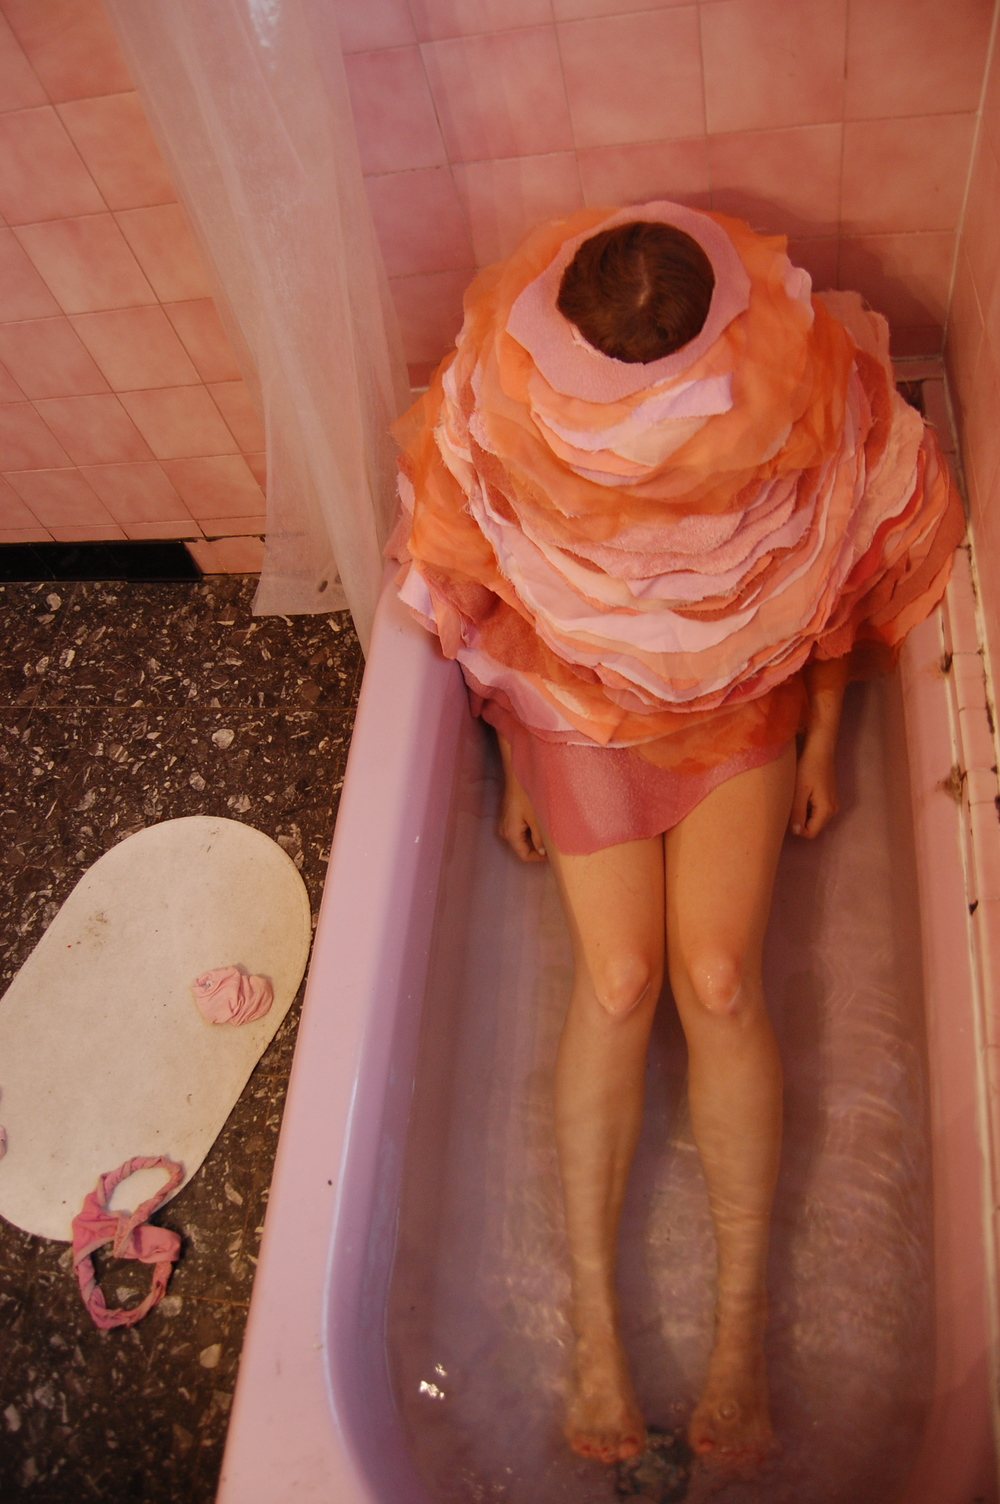 Performance still from Topography series, 2010